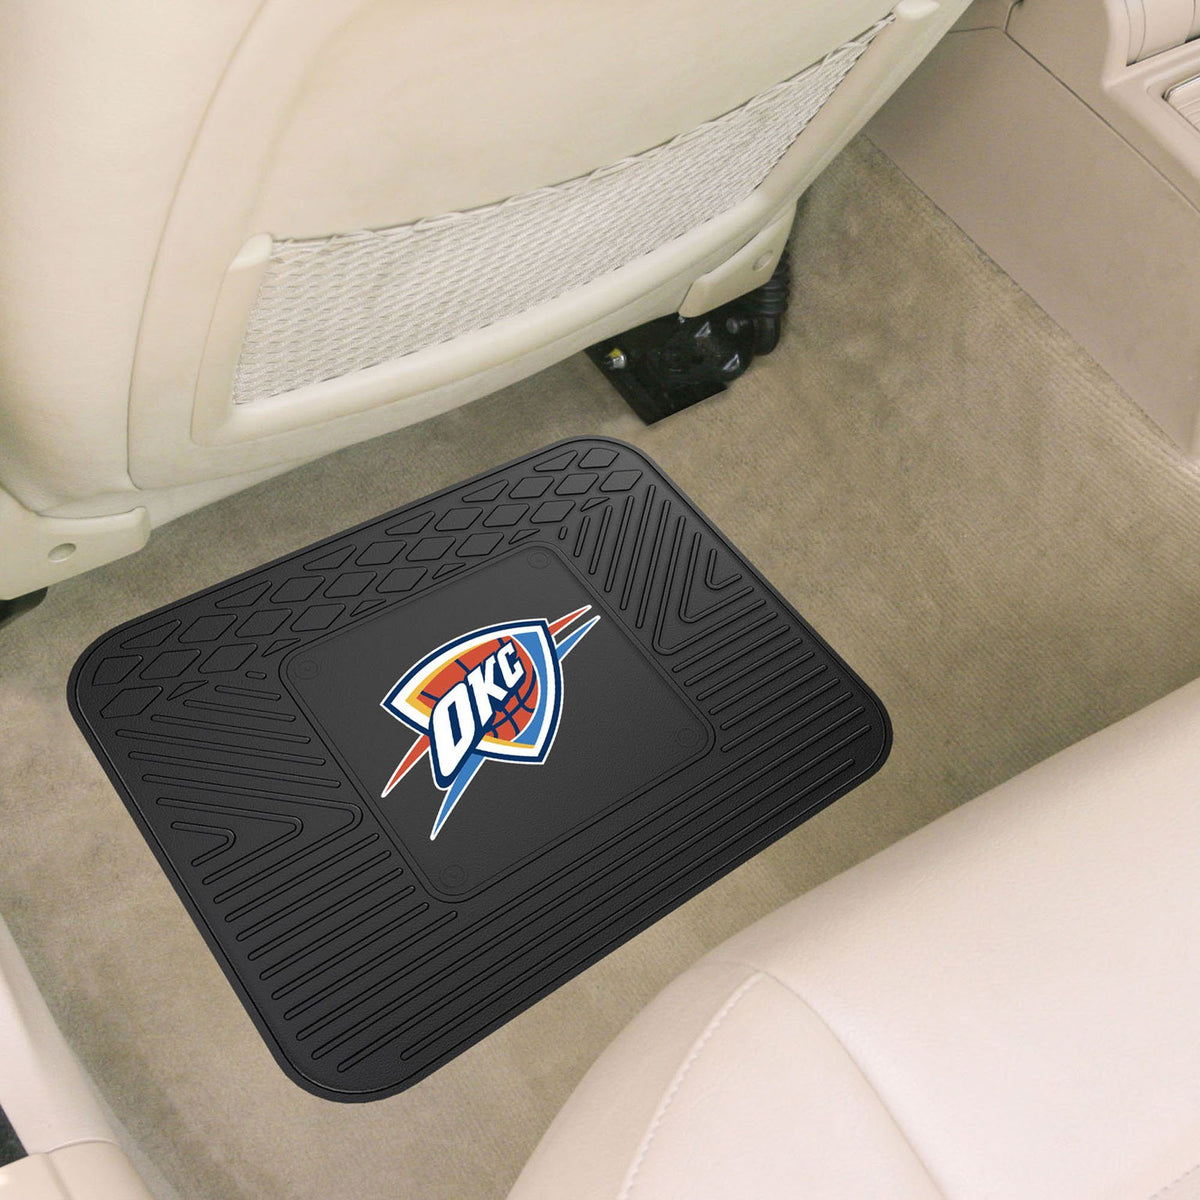 NBA - Utility Mat NBA Mats, Rear Car Mats, Utility Mat, NBA, Auto Fan Mats Oklahoma City Thunder